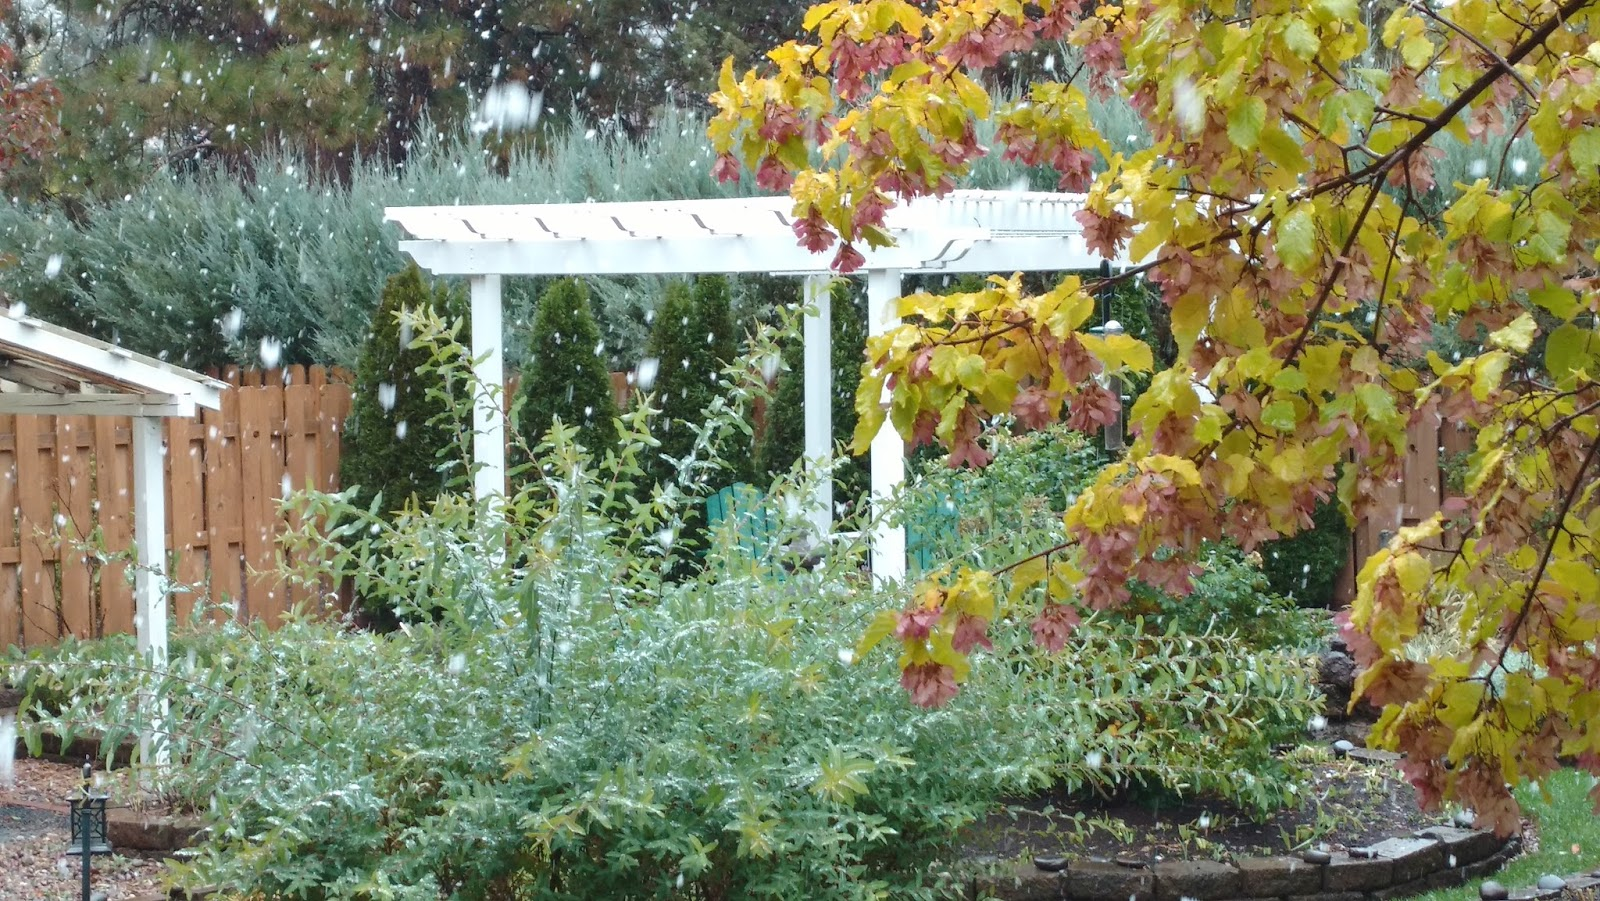 Tending Our Gardens: October: Snow, completed projects and gorgeous